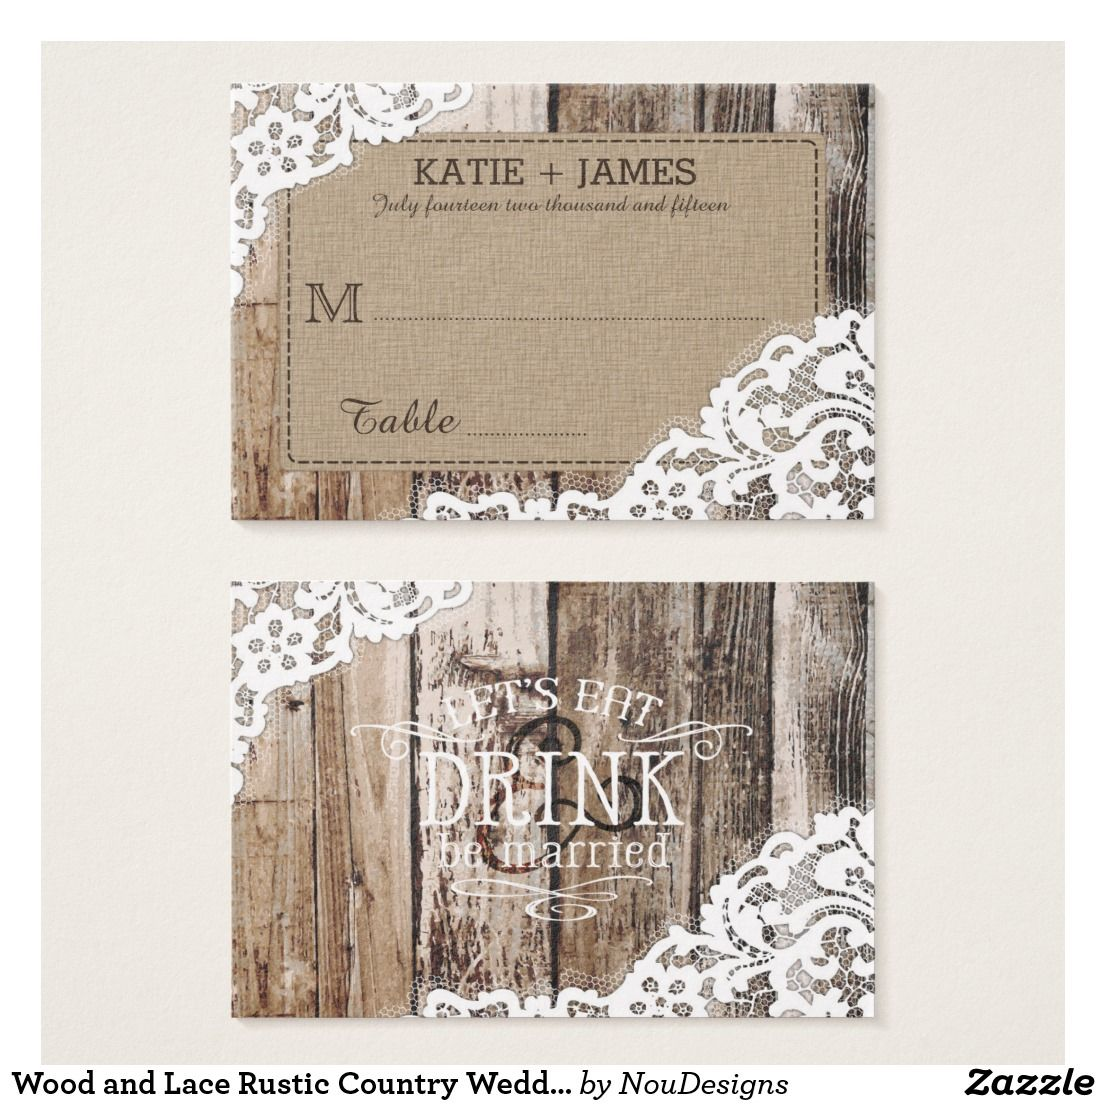 Wood and Lace Rustic Country Wedding Place Cards Aged wood and lace over linen-look background rustic place card design for a country western wedding.